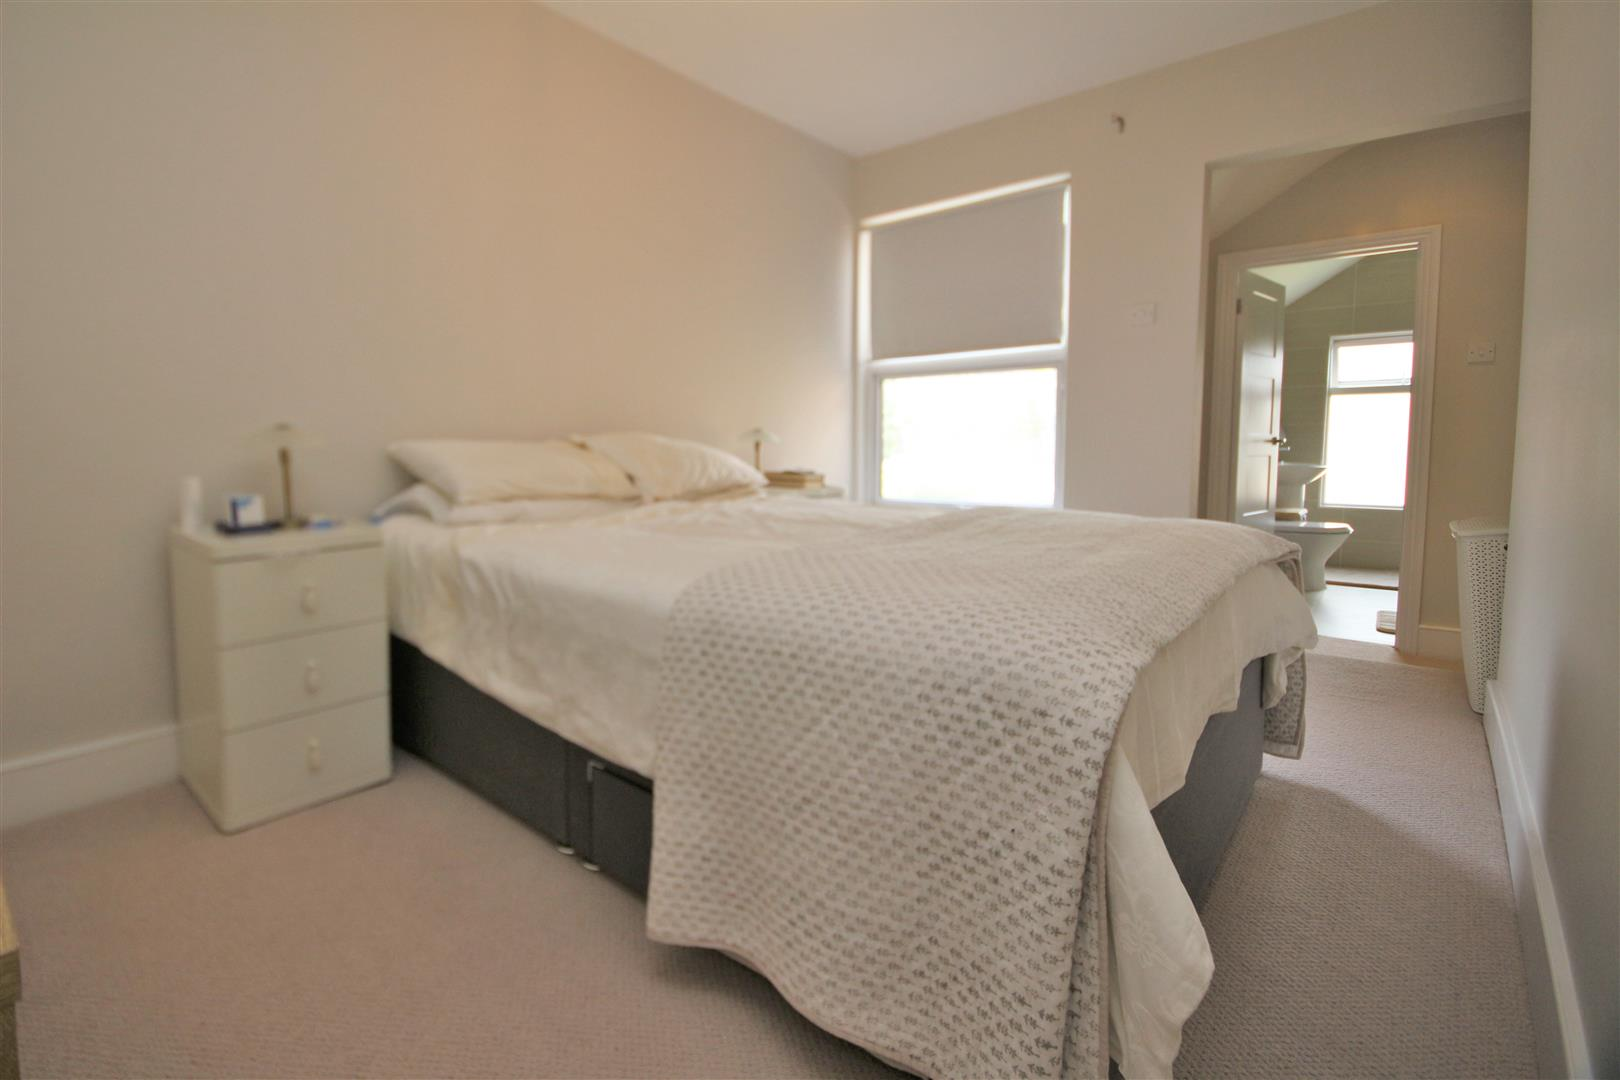 2 bed to rent - (Property Image 3)